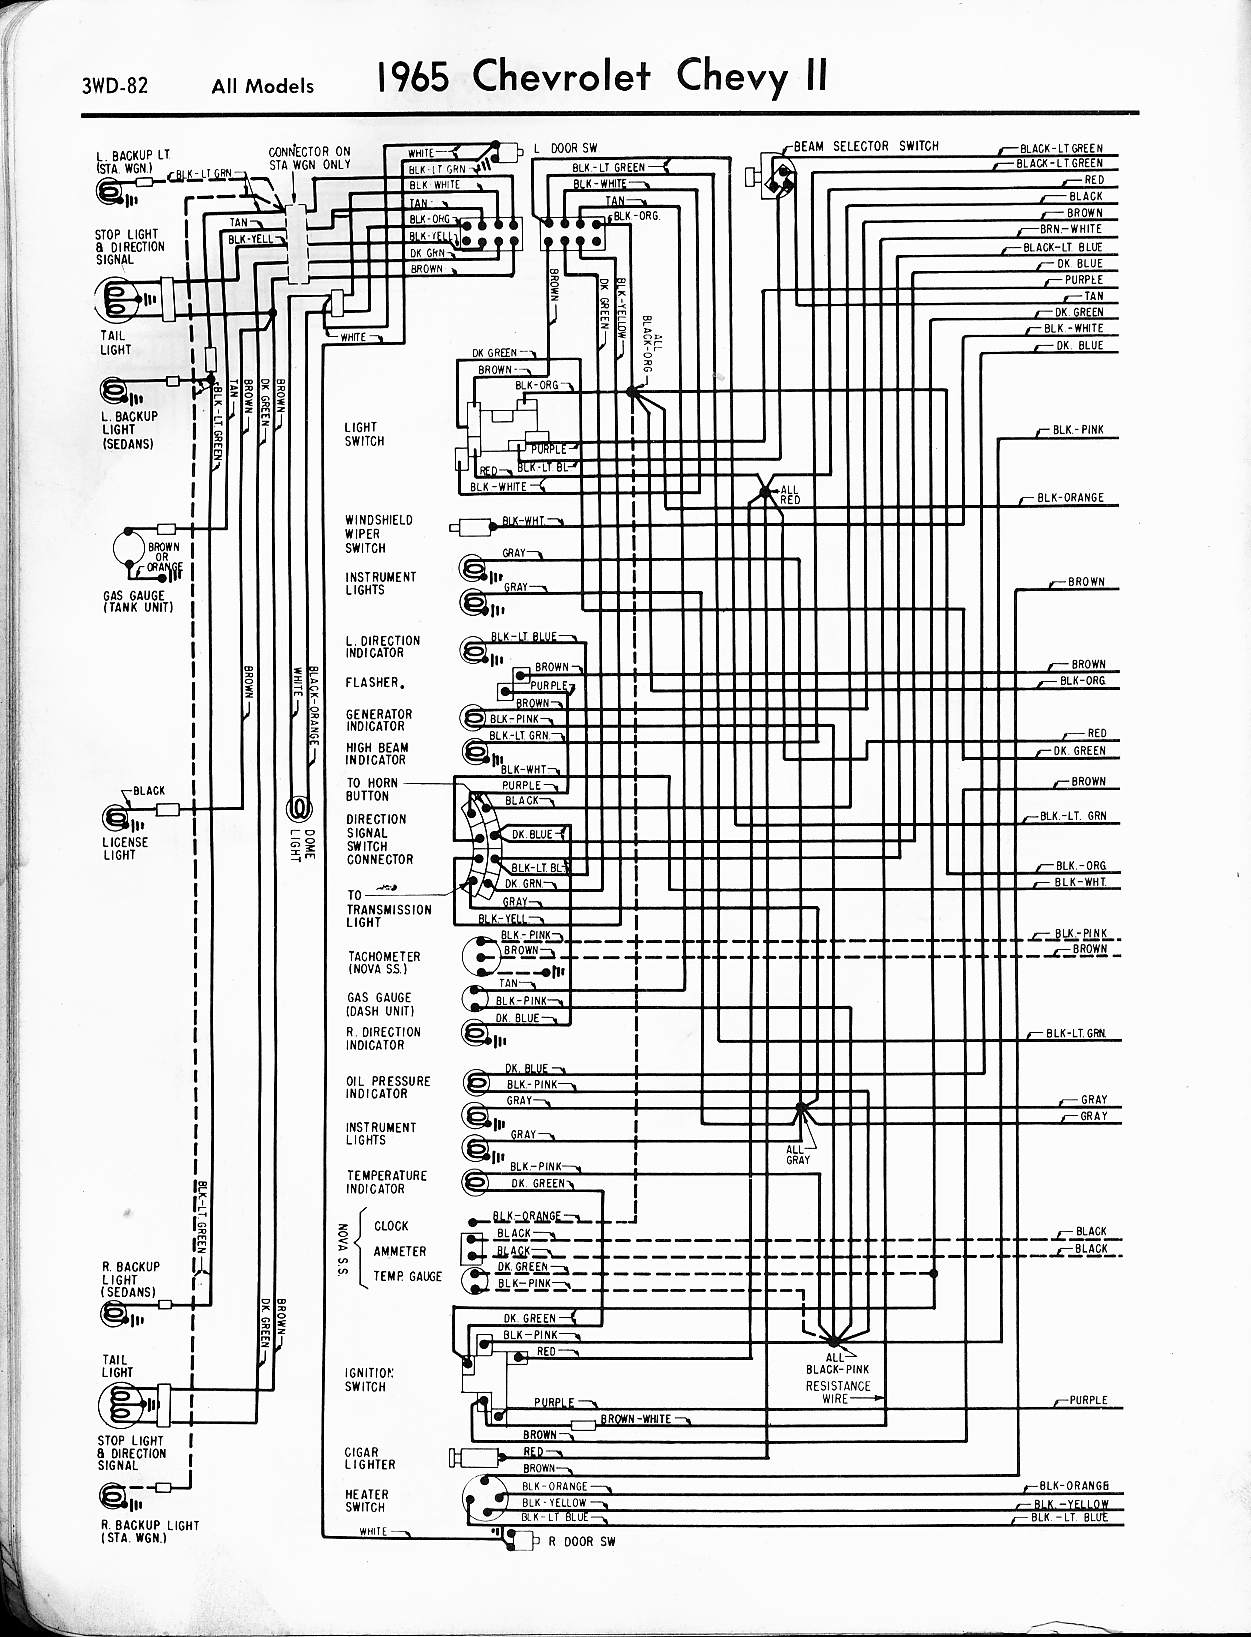 MWireChev65_3WD 082 chevy diagrams 1965 chevy truck turn signal wiring diagram at reclaimingppi.co